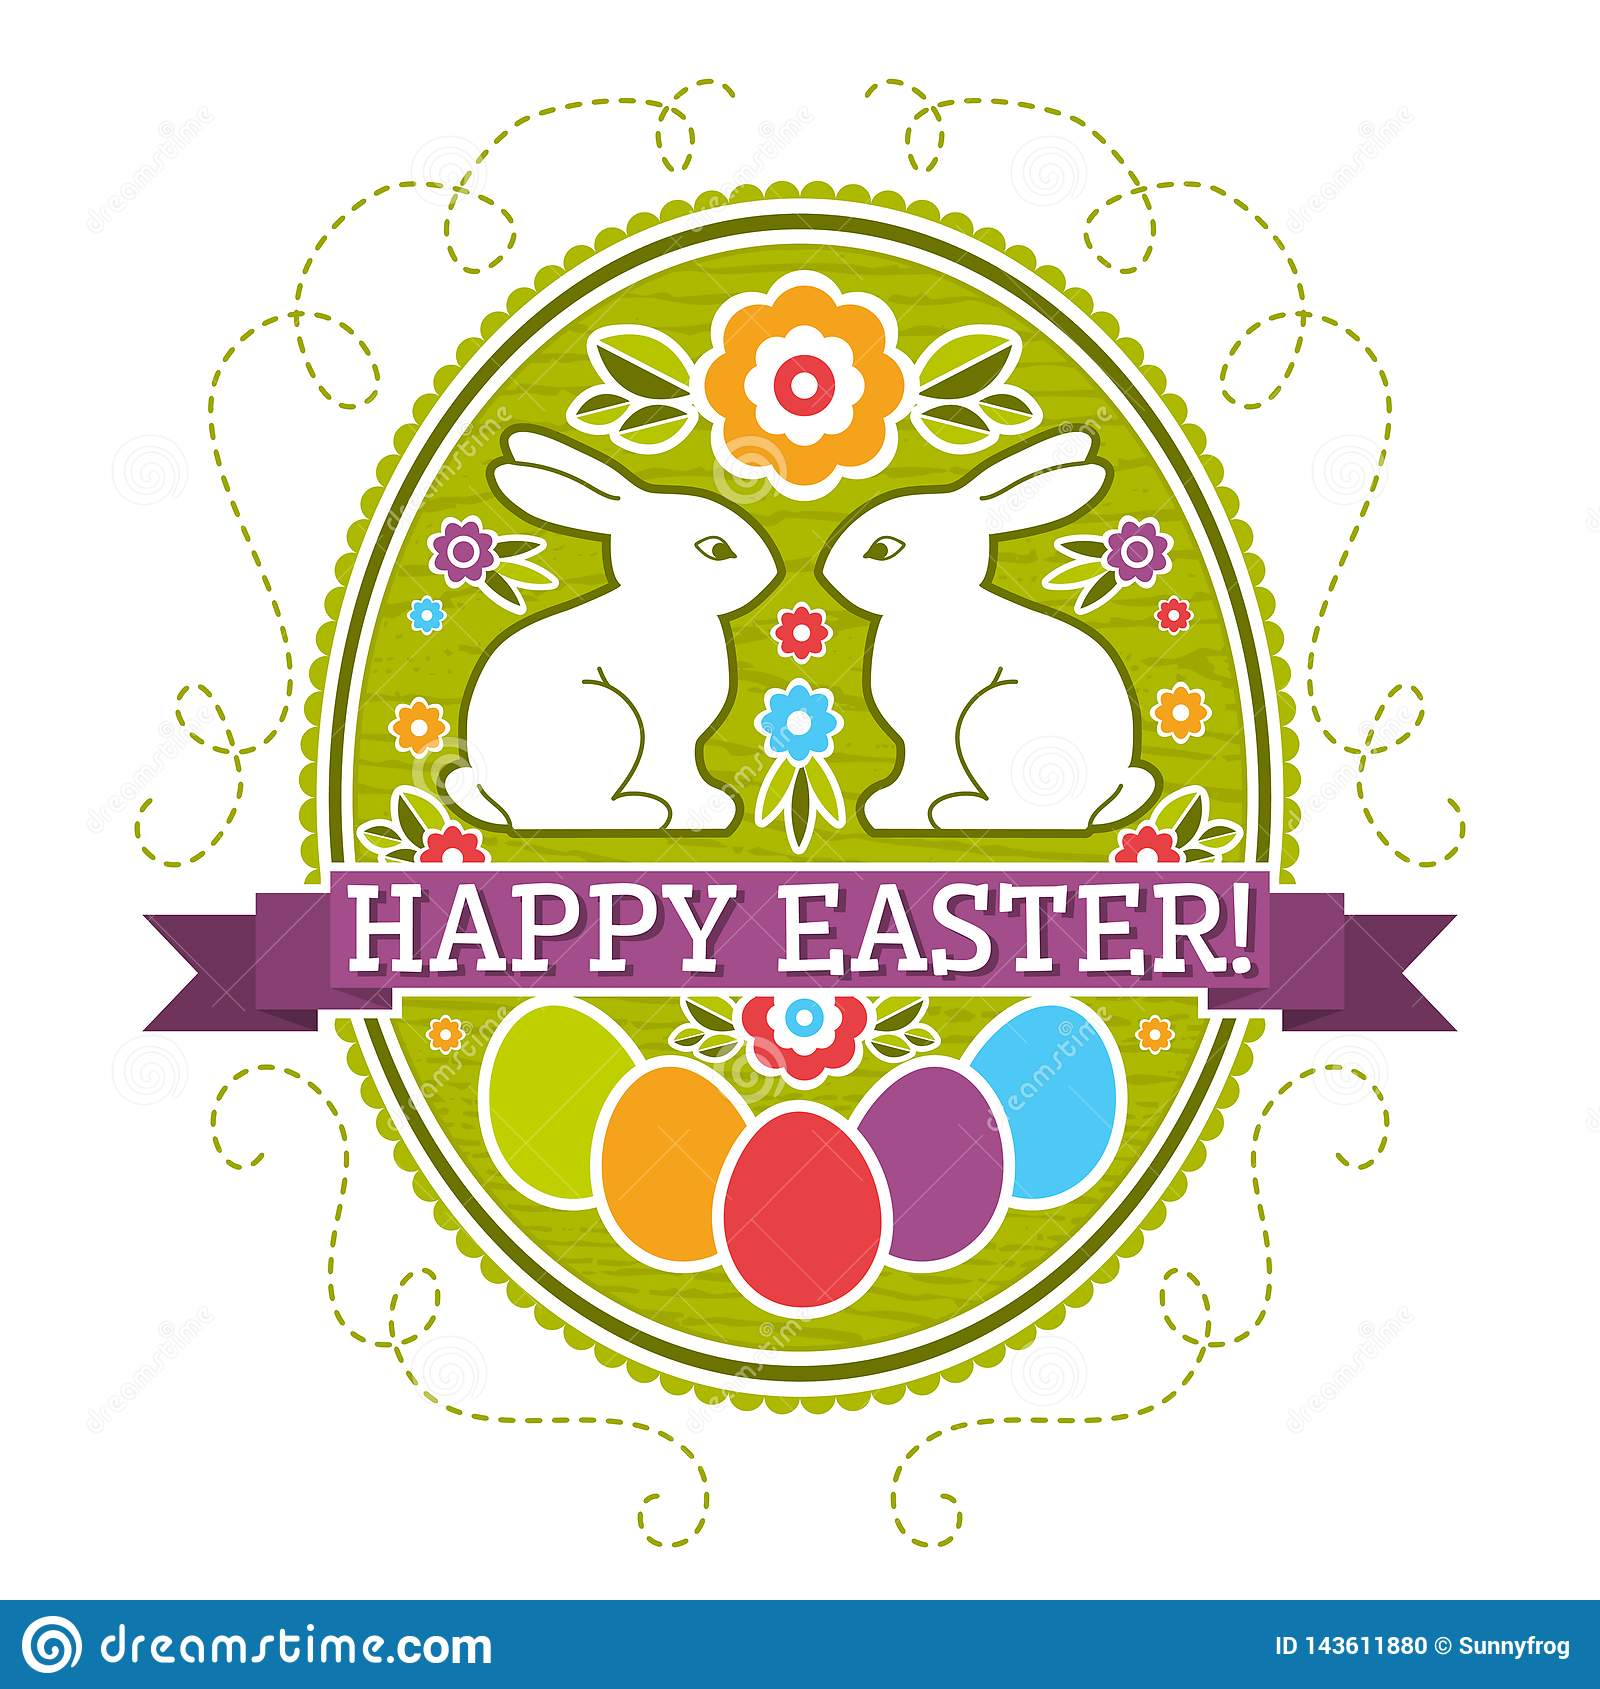 Easter label with color eggs, rabbit and flowers. Holiday Easter greetings card. Print design, label, sticker, scrap booking,